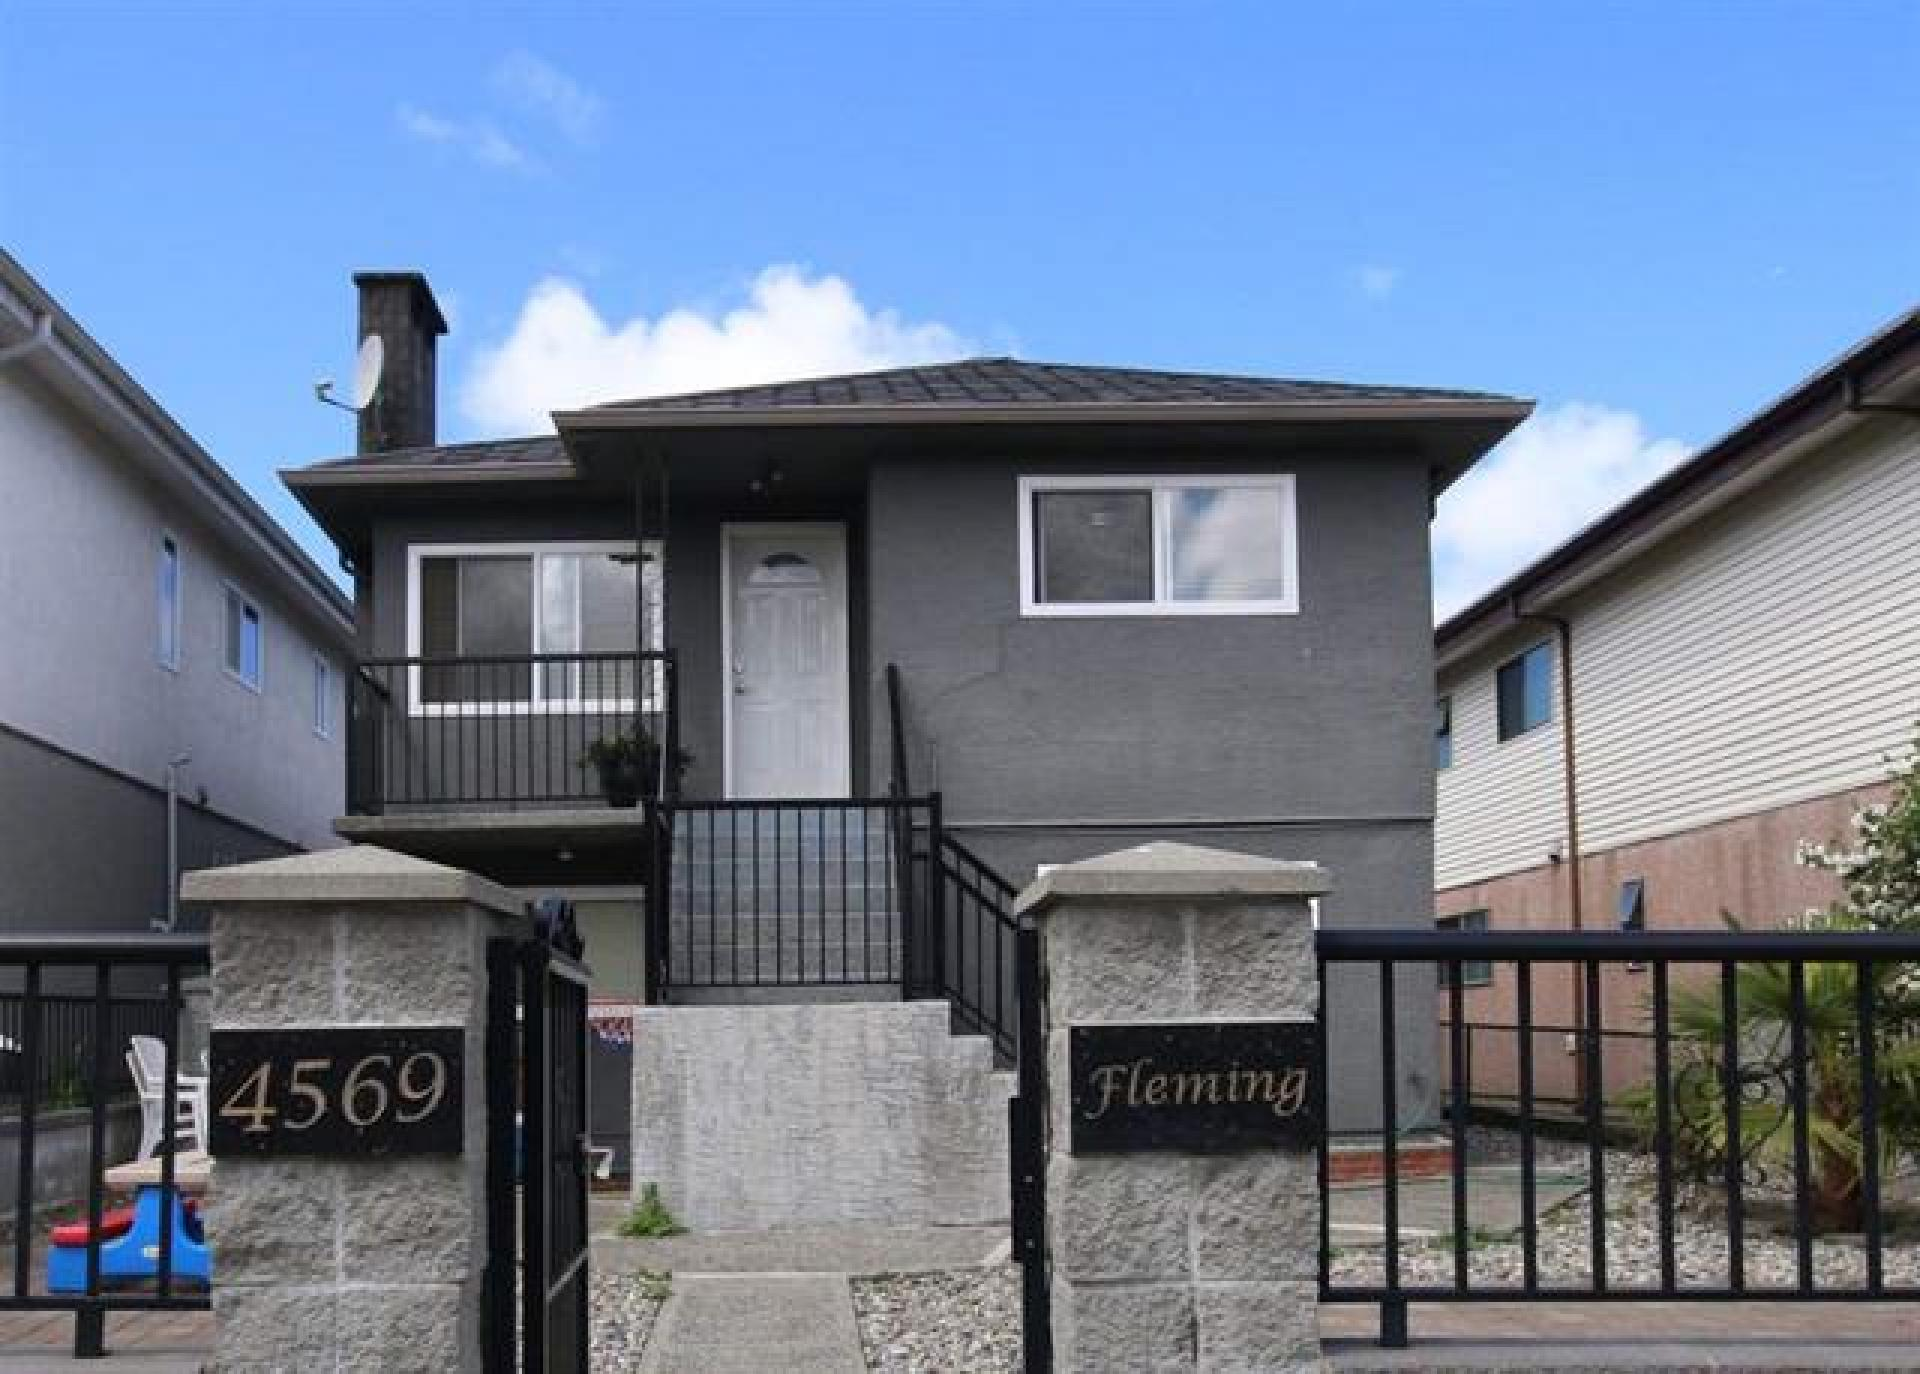 4569 Fleming, Knight, Vancouver East